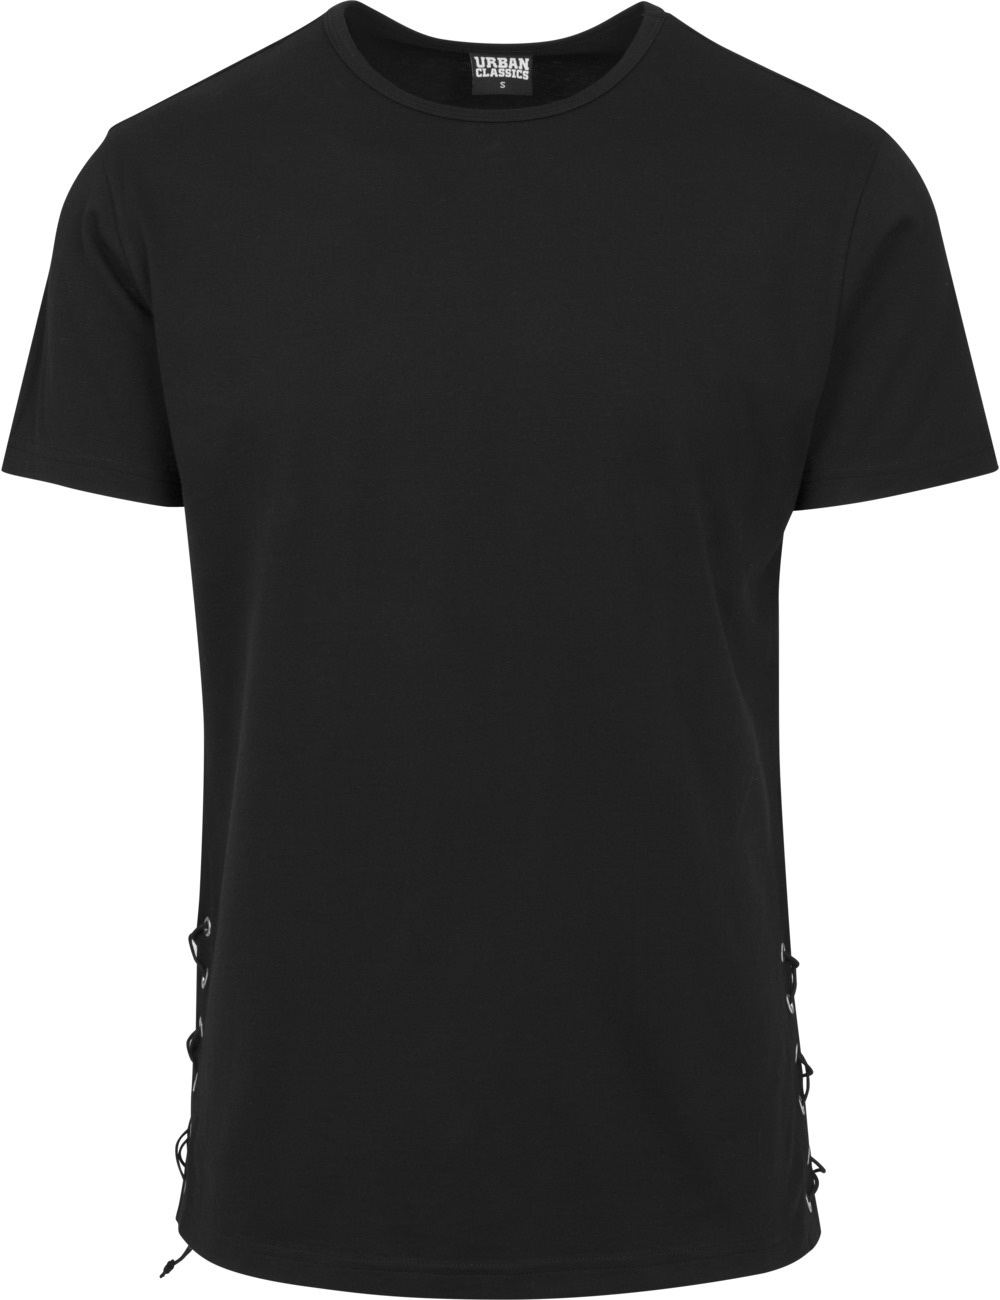 urban-classics-herren-t-shirt-lace-up-long, 19.90 EUR @ jeans